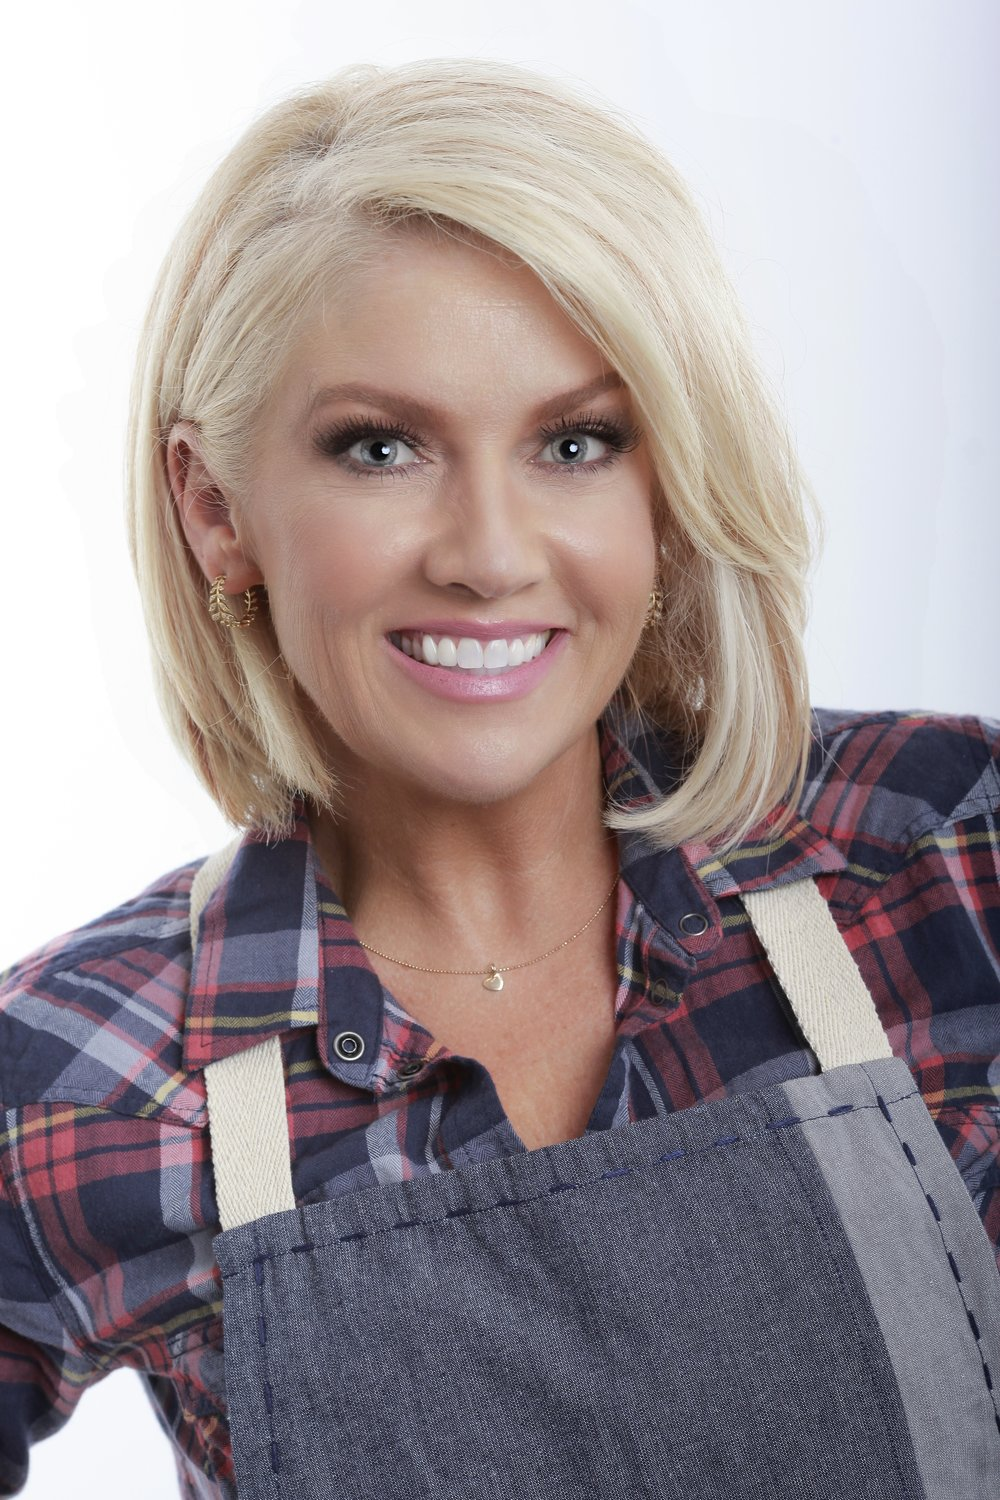 - Amy : 7th generation Texan, Cook, Writer, Speaker and Gatherer of good things